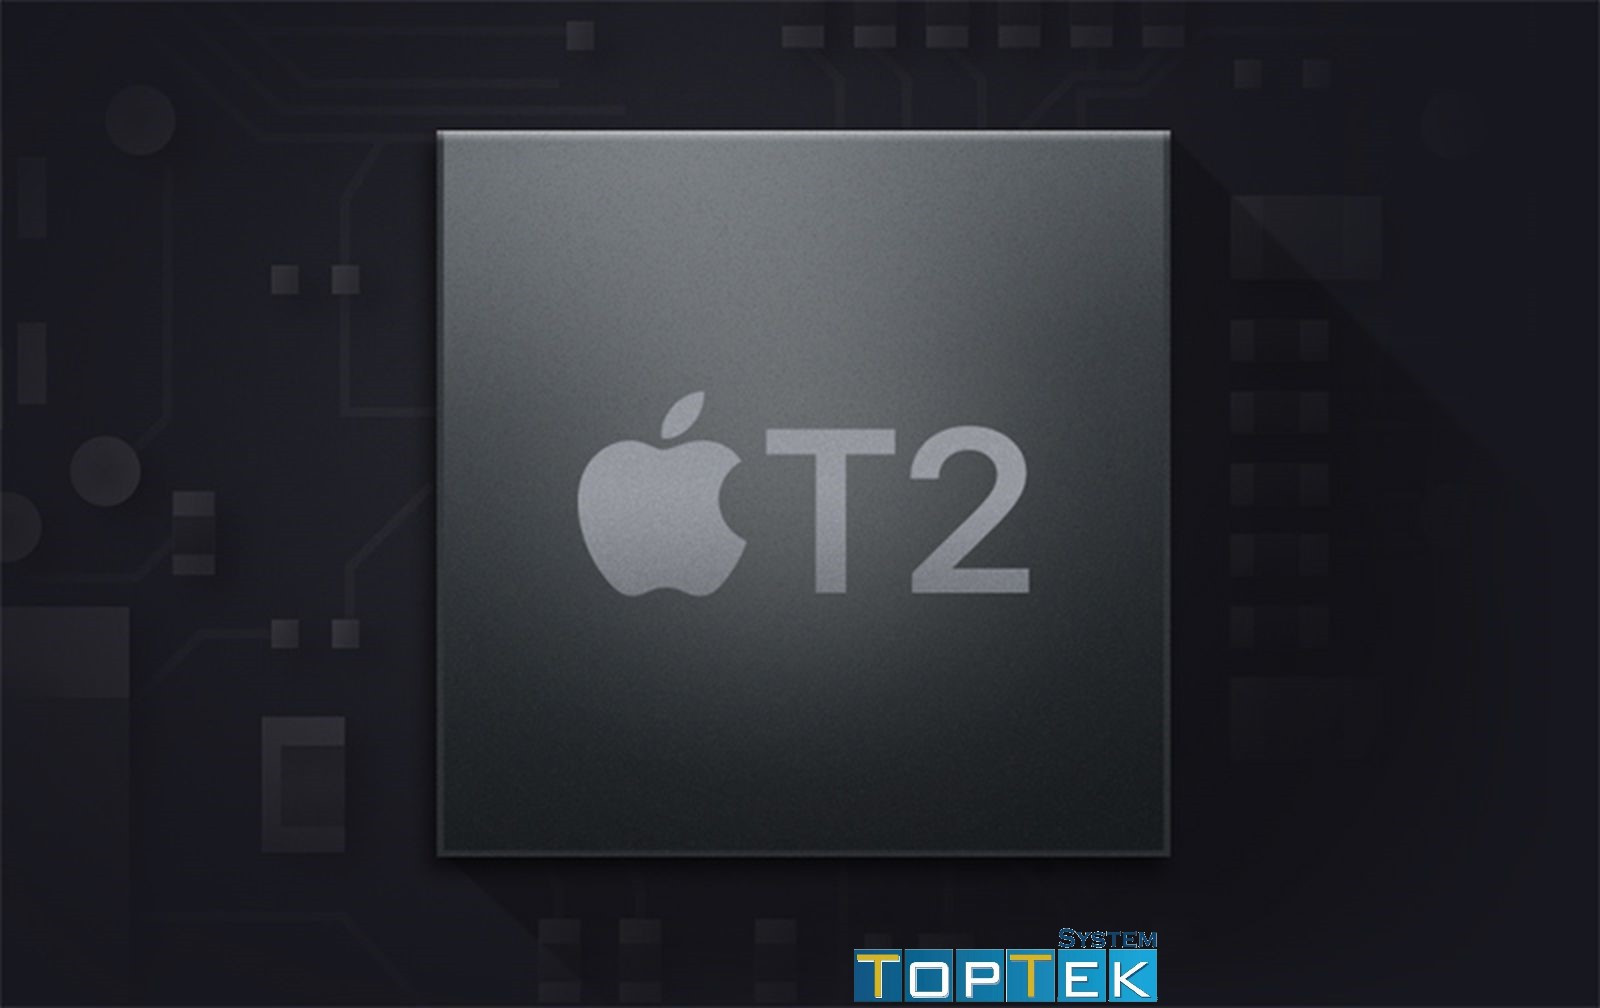 Toptek T2 Security Chip